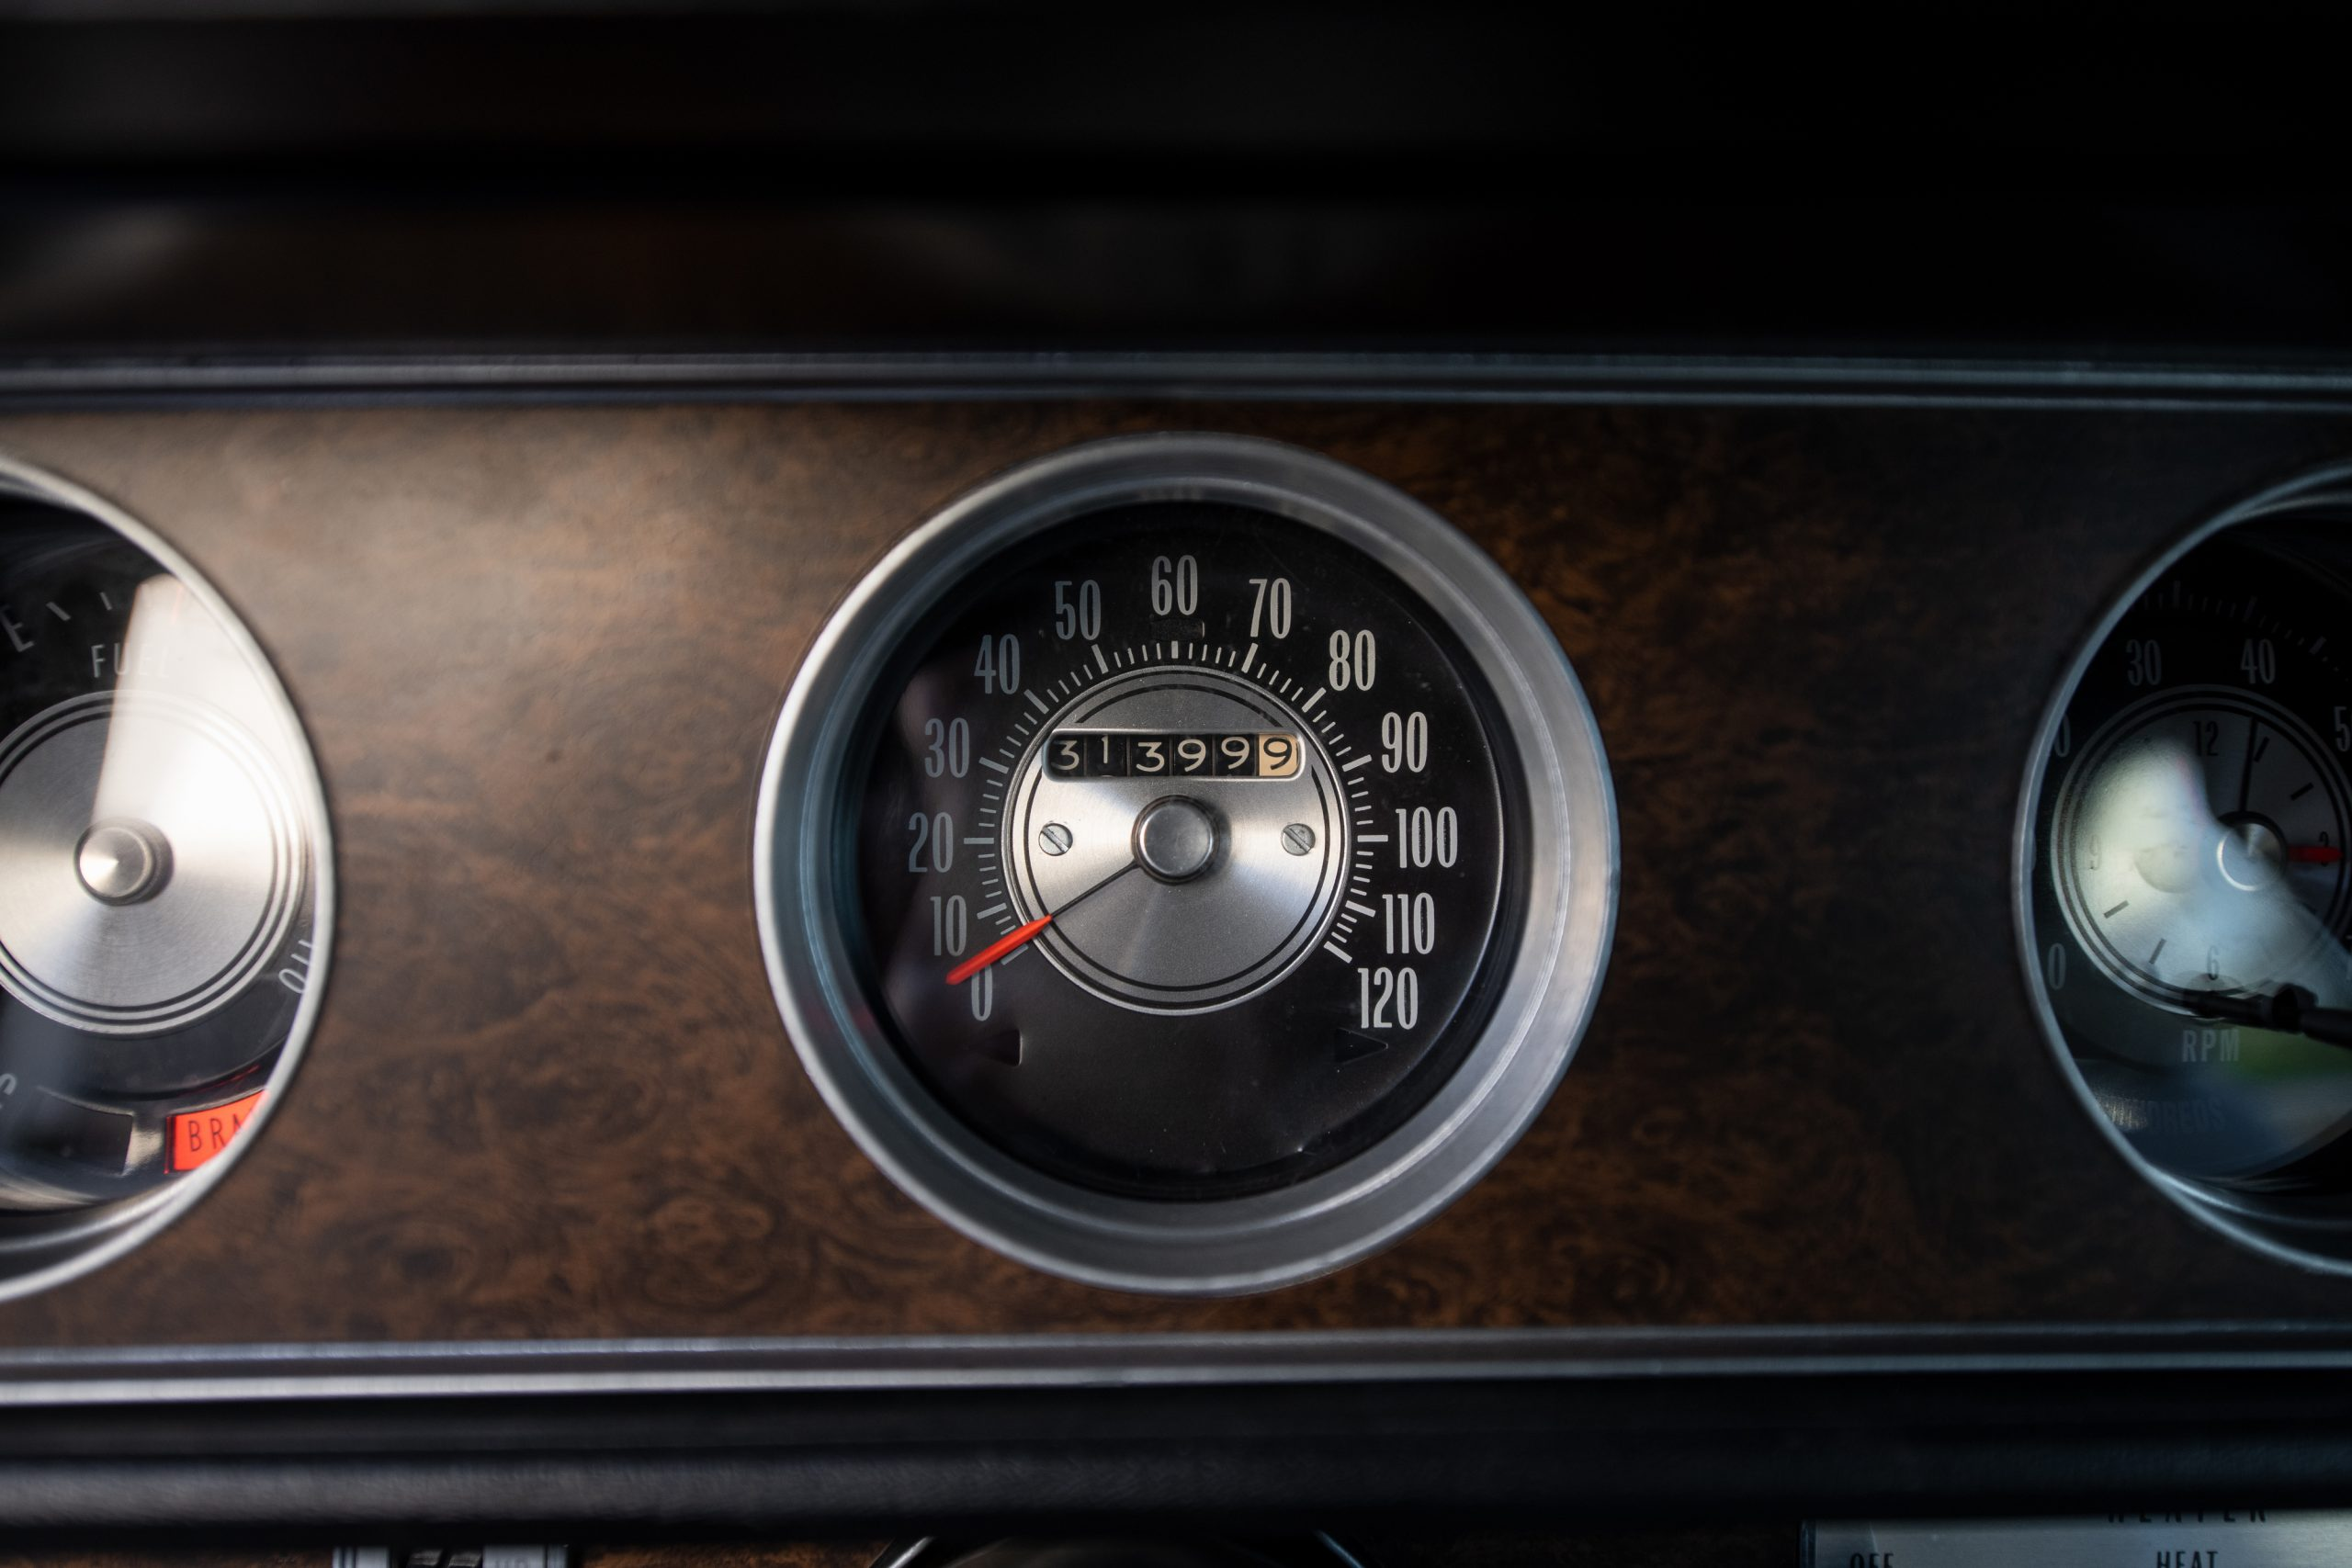 1970 Oldsmobile 442 Convertible Dash Gauge Speedometer